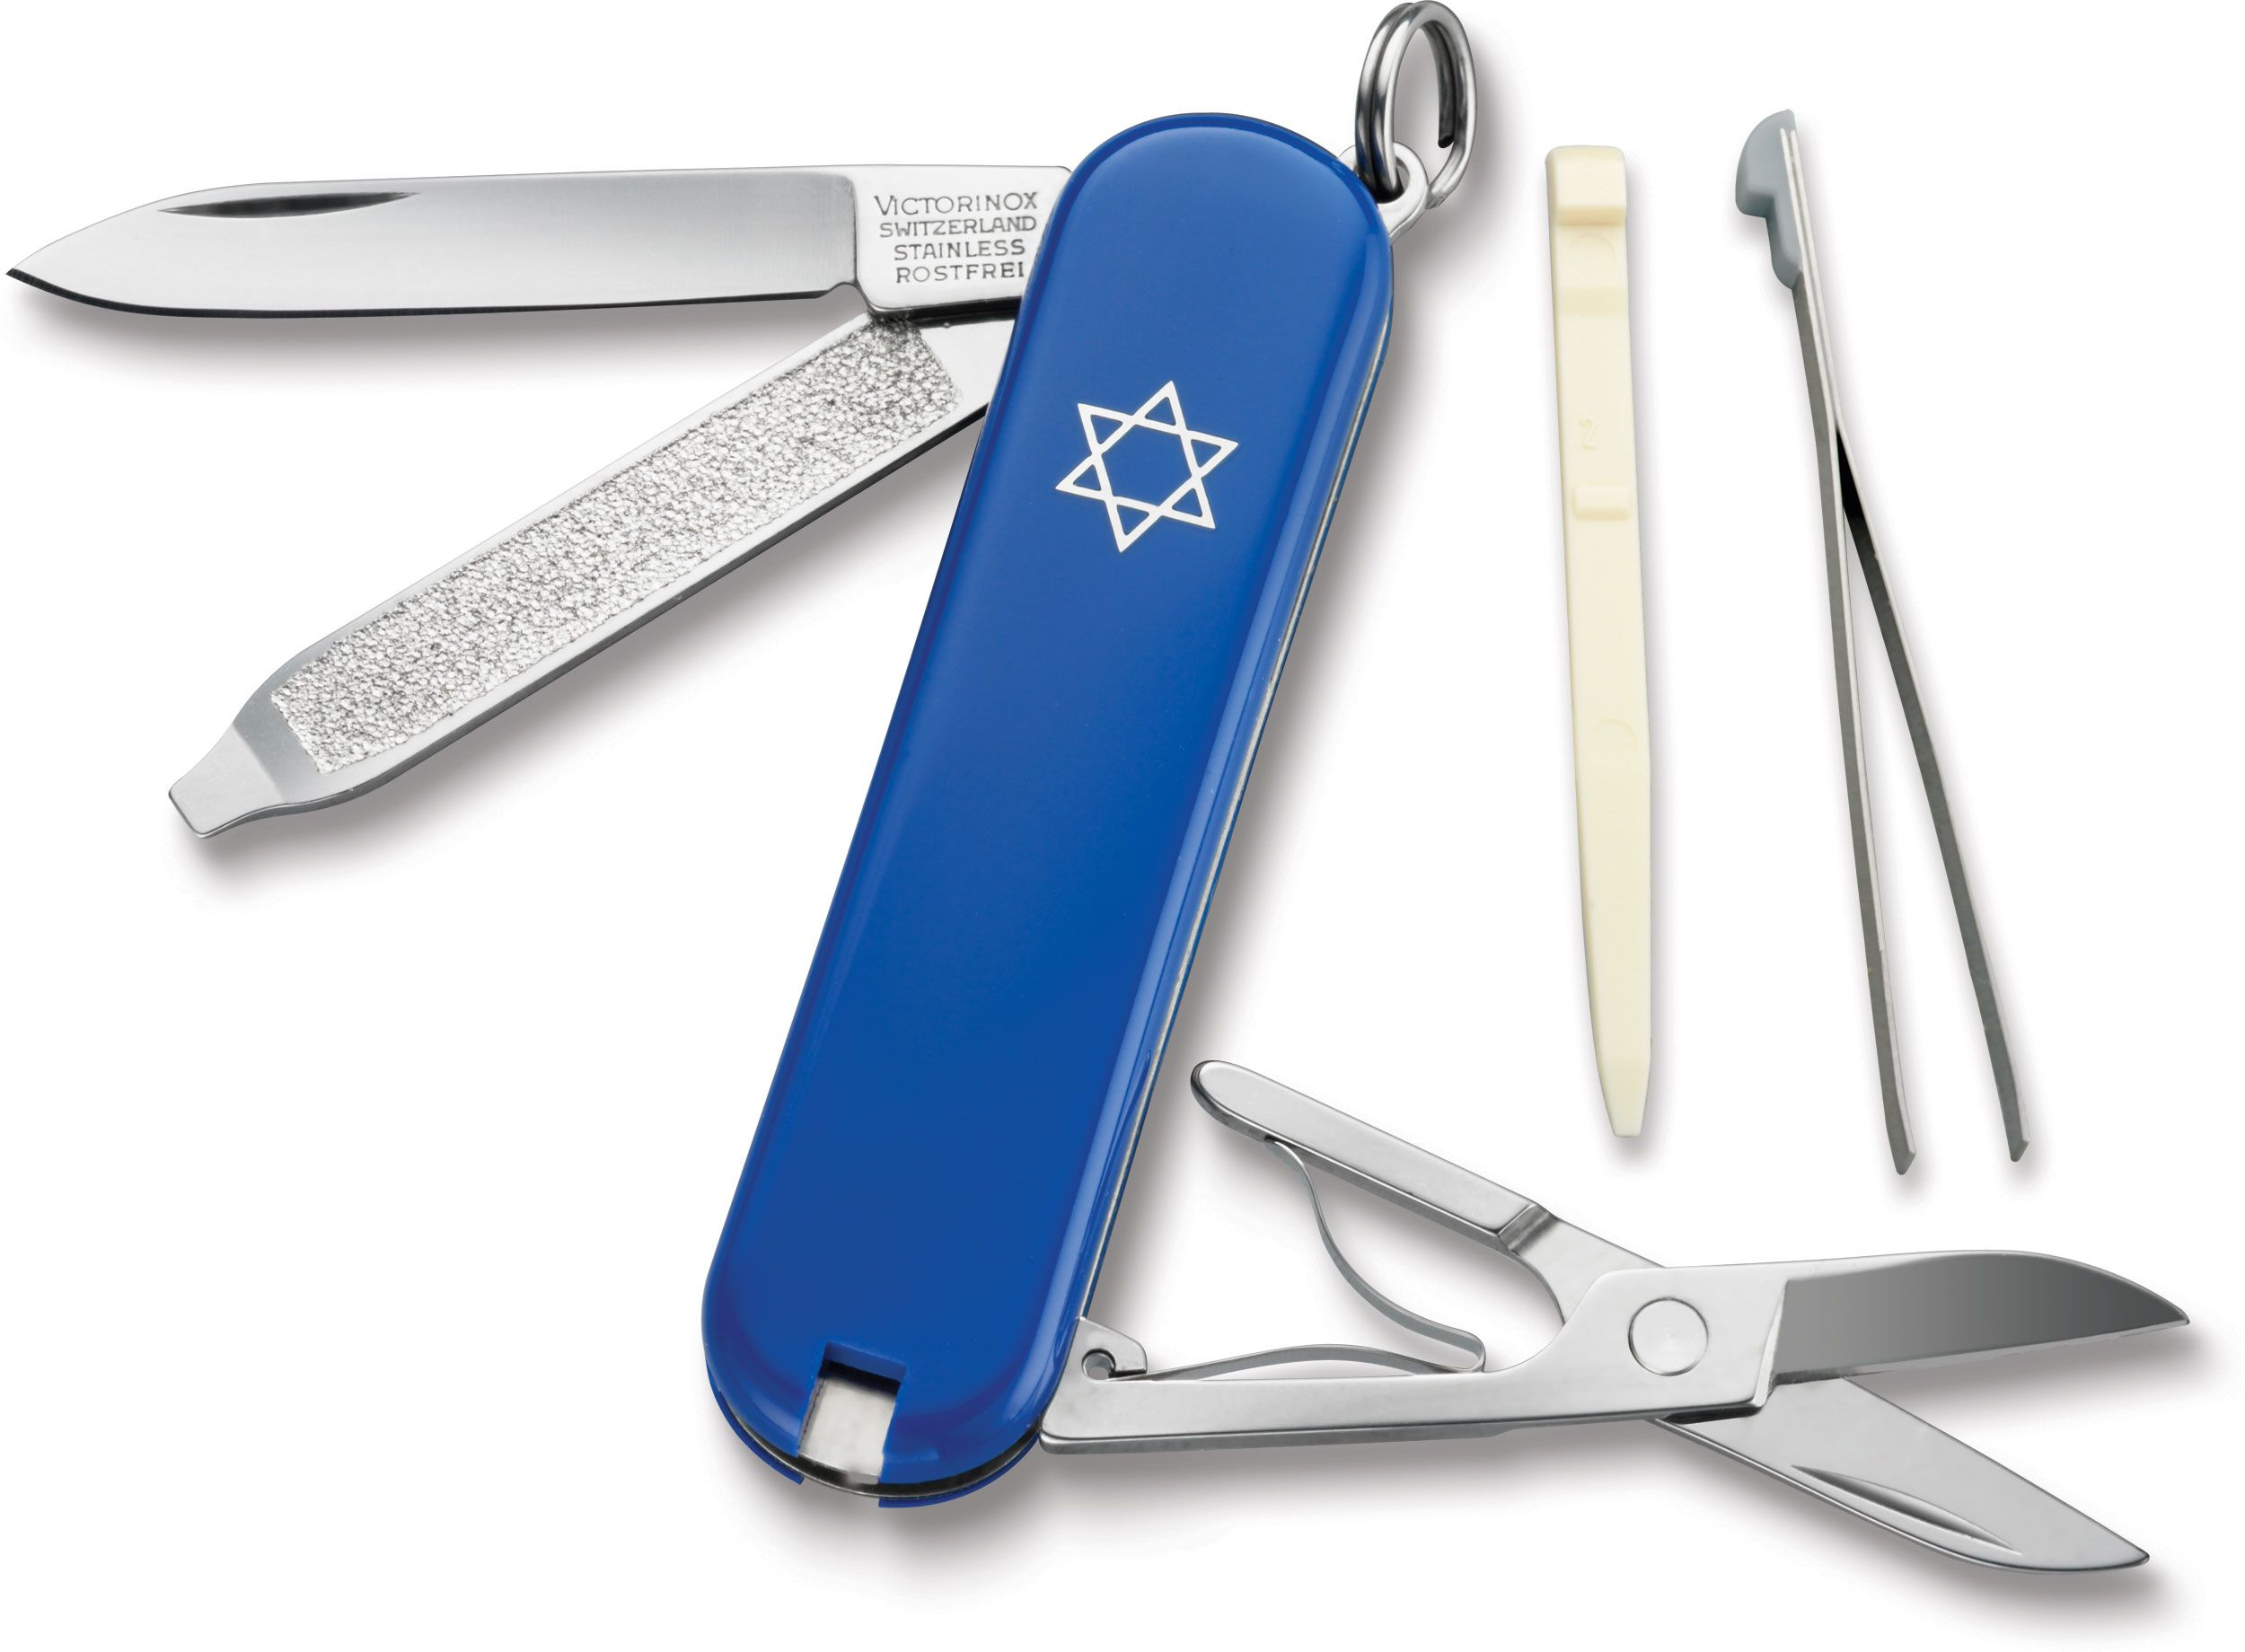 Victorinox Swiss Army Classic SD Multi-Tool, Star of David, 2-1/4 inch Closed (Old Sku 54002)